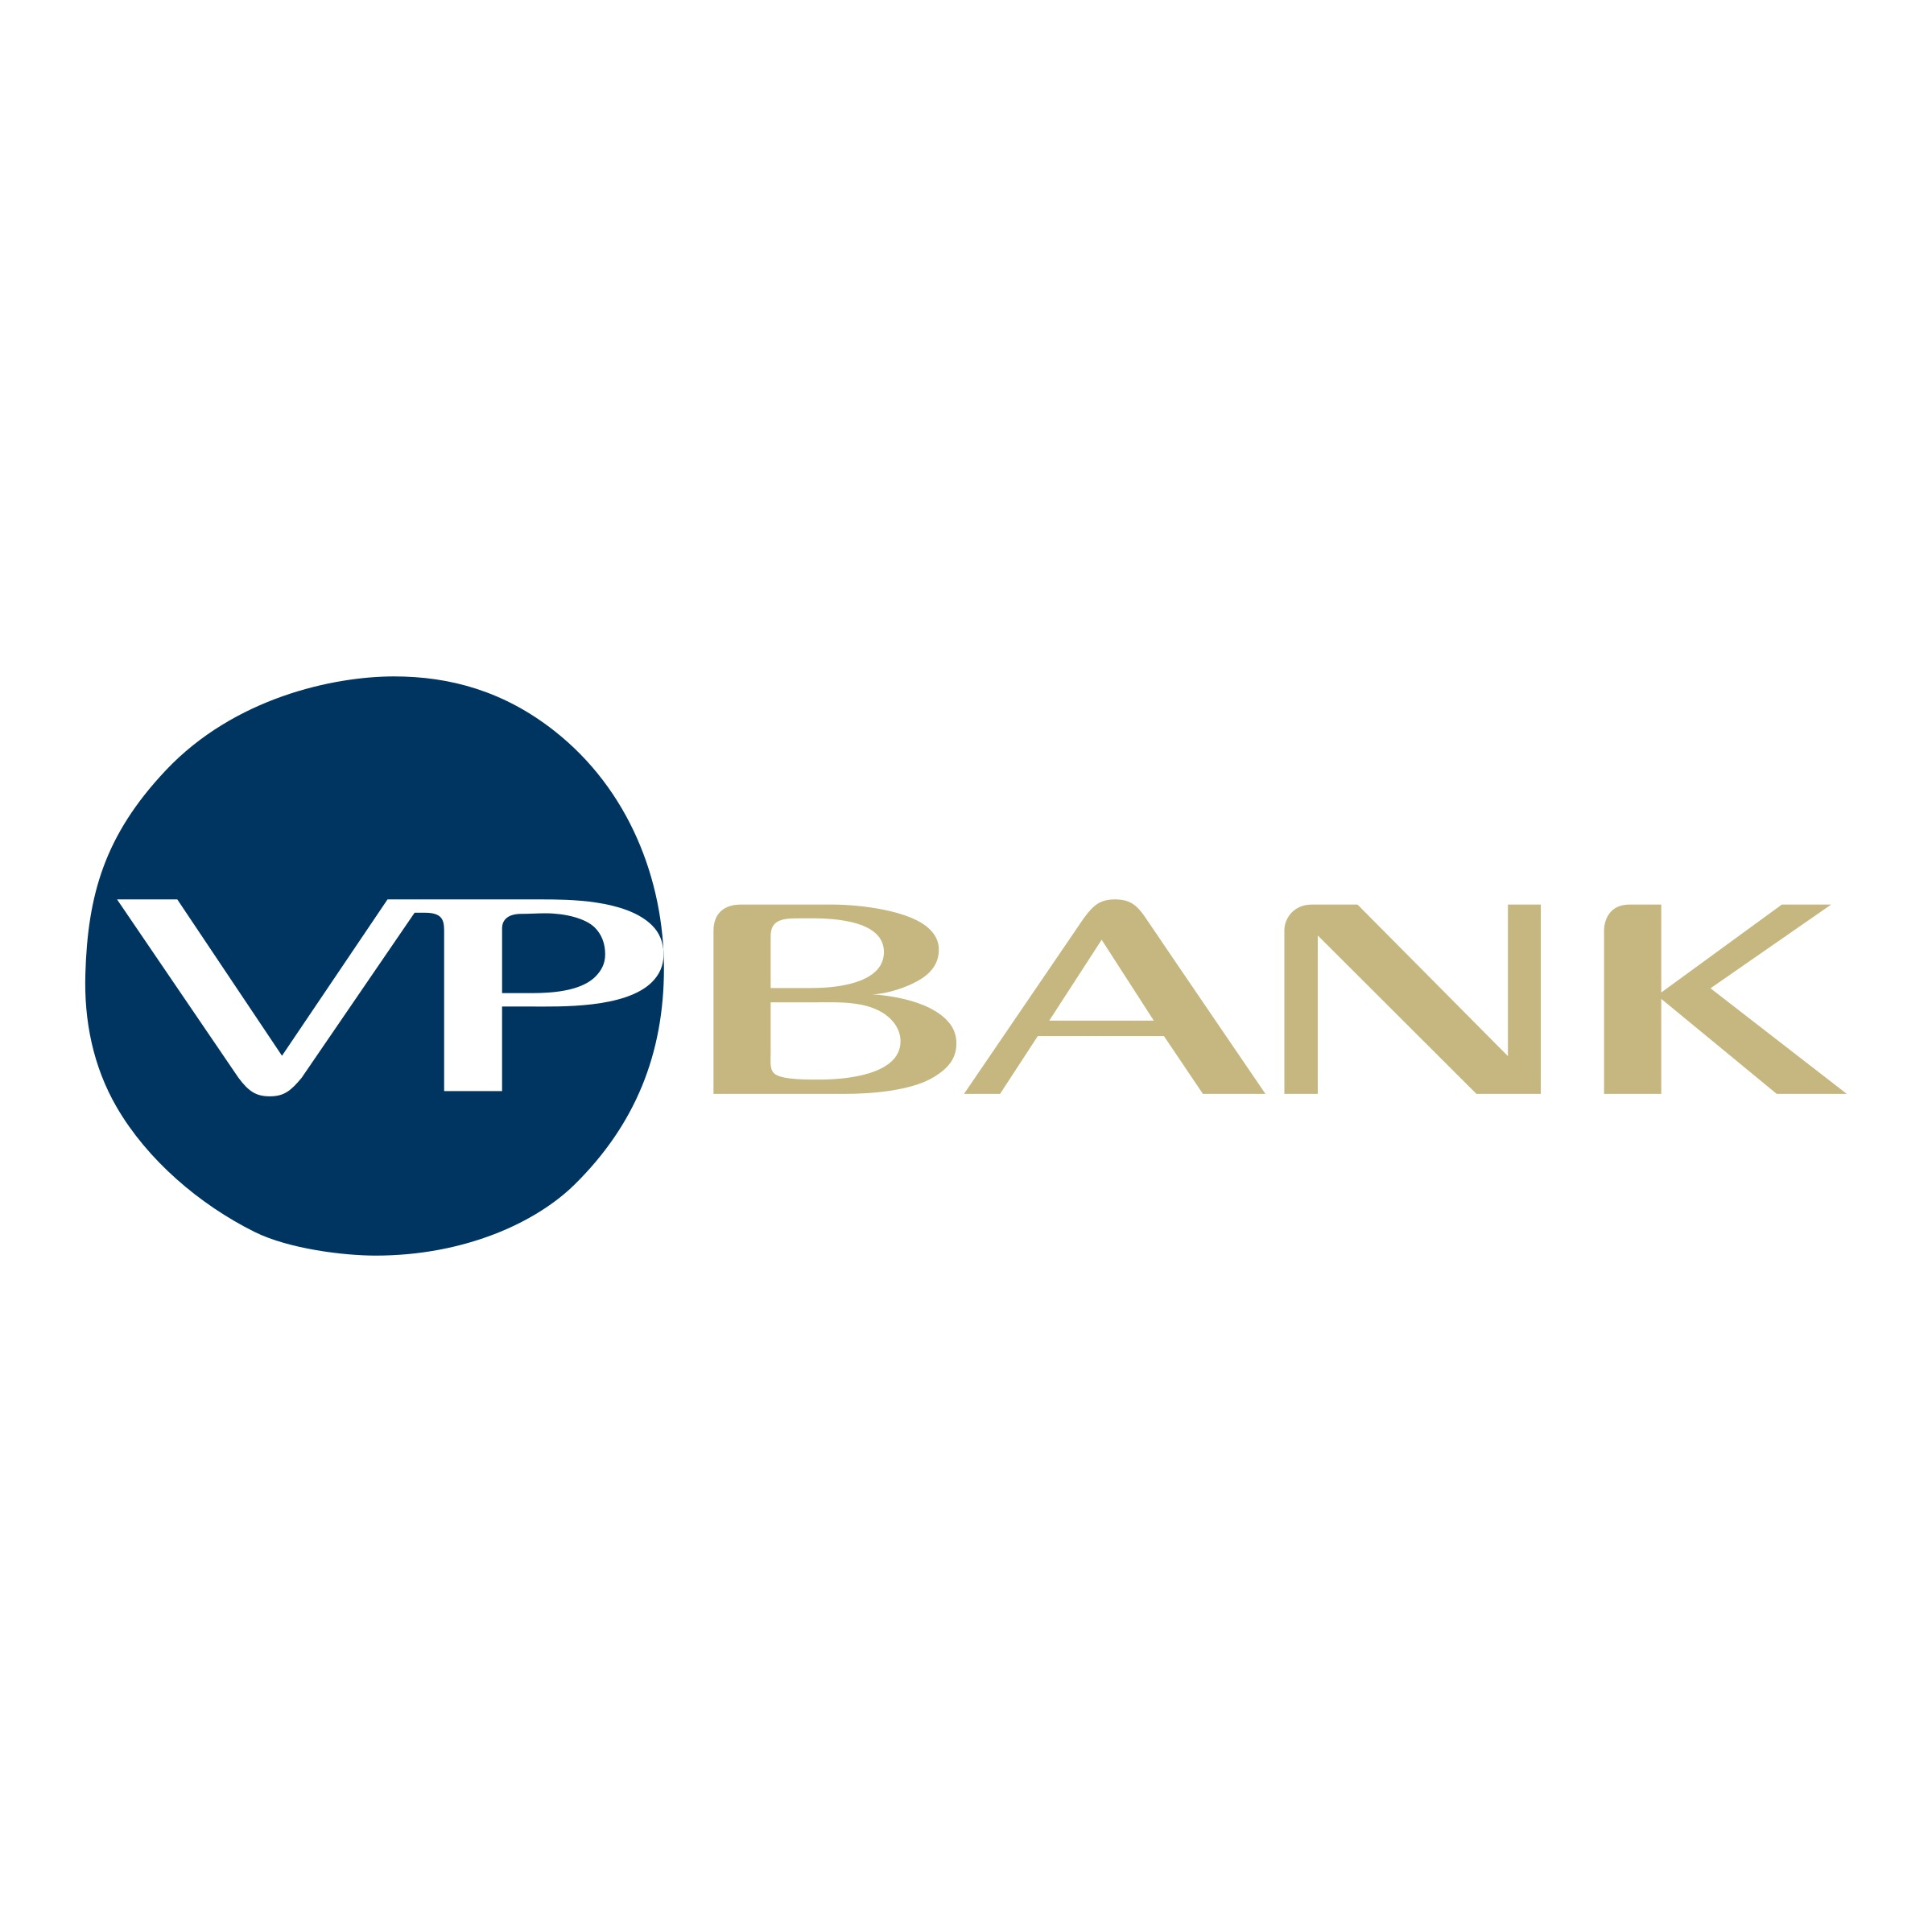 VP Bank in Asia makes two newly-created key appointments to its Asia Management Committee